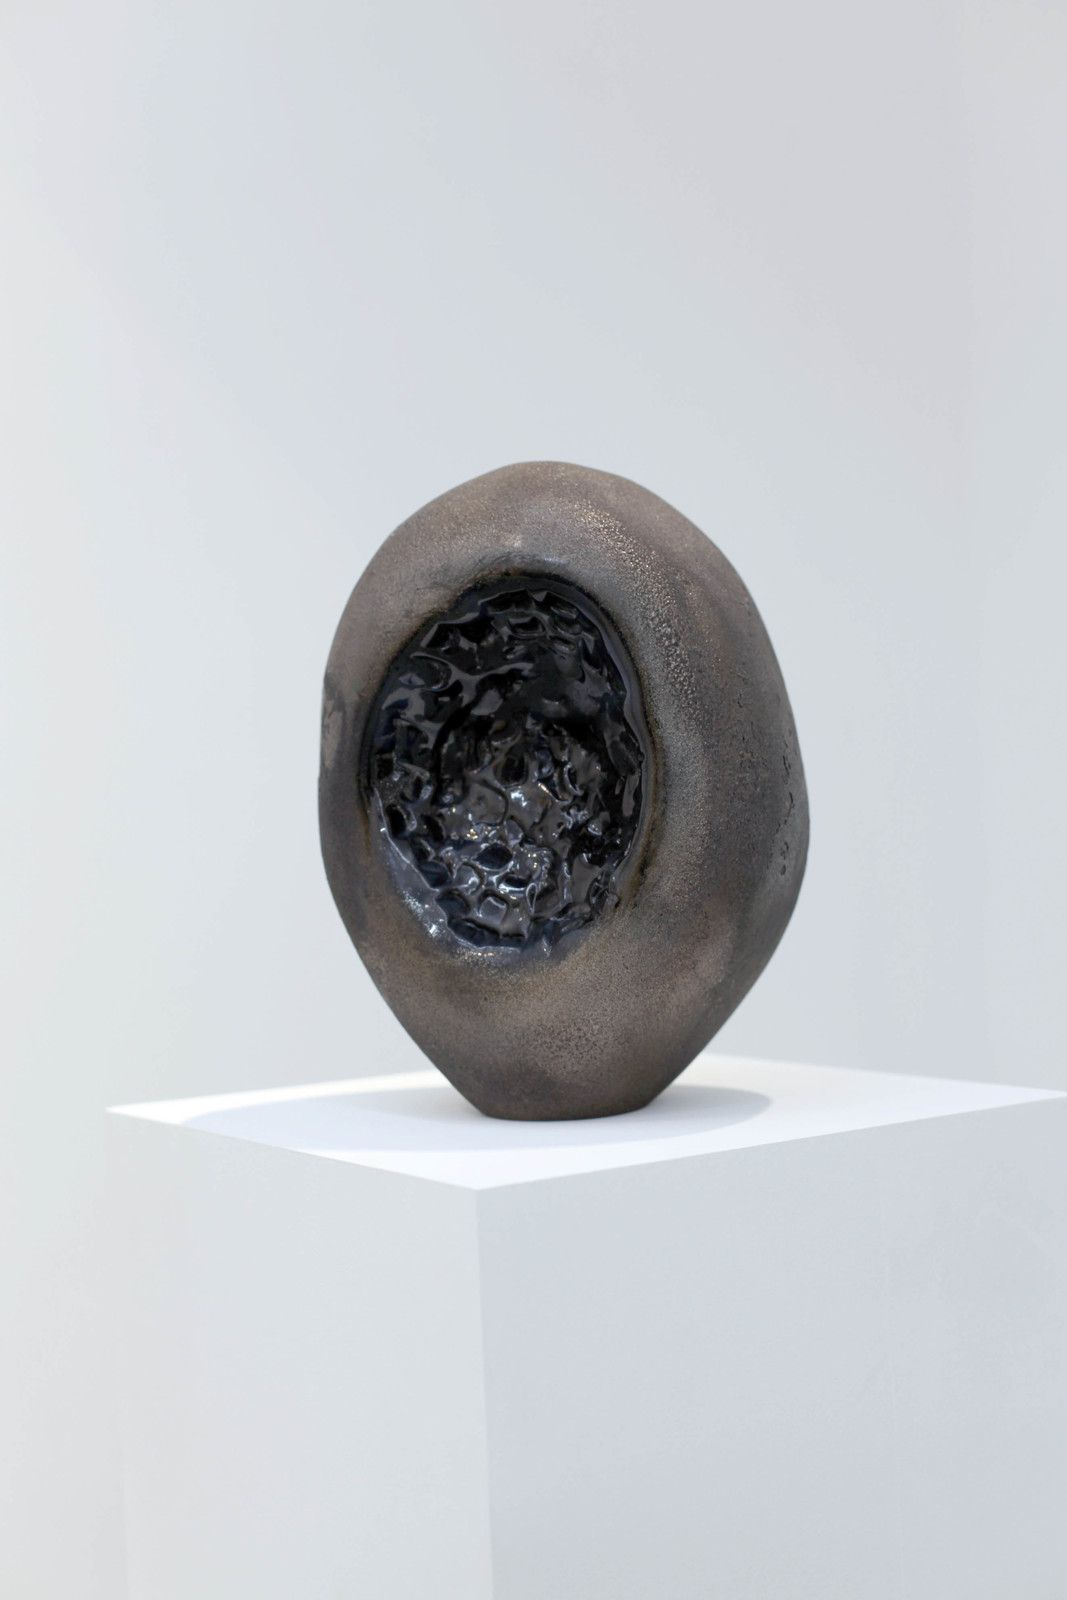 """Uncertain Black Stone"", 2016 de Mehdi- Georges LAHLOU - Courtesy de l'artiste et la Galerie Rabouan & Moussion © Photo Éric Simon"